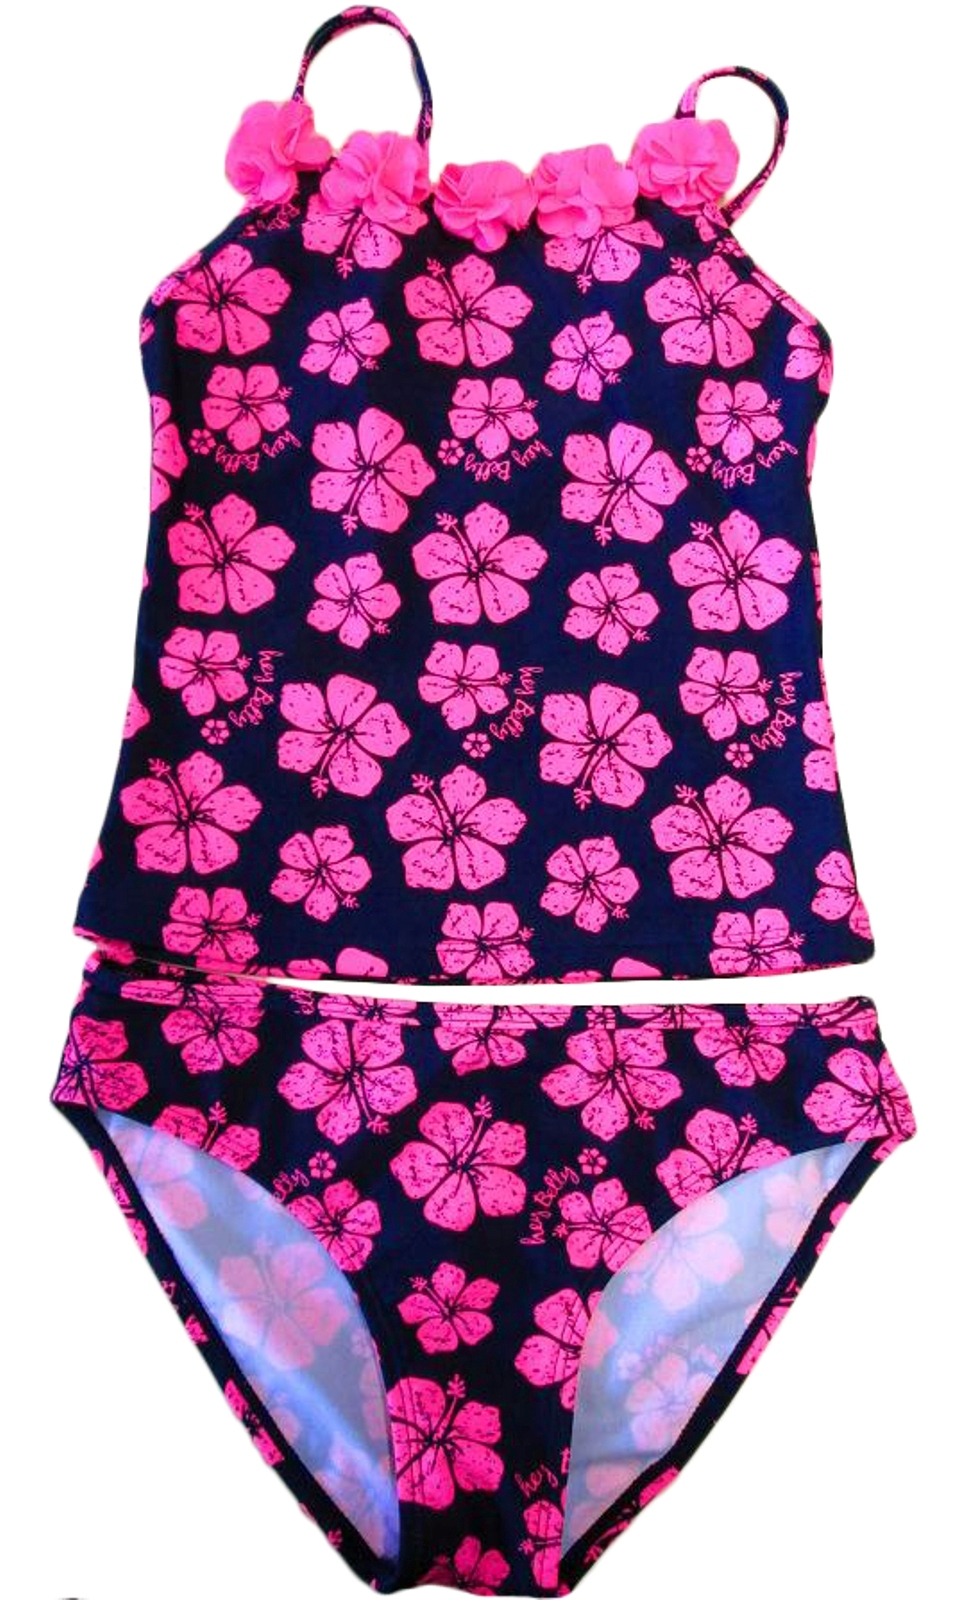 GIRLS CHILDRENS KIDS BIKINI SET SWIMMING COSTUME TANKINI SUMMER ...